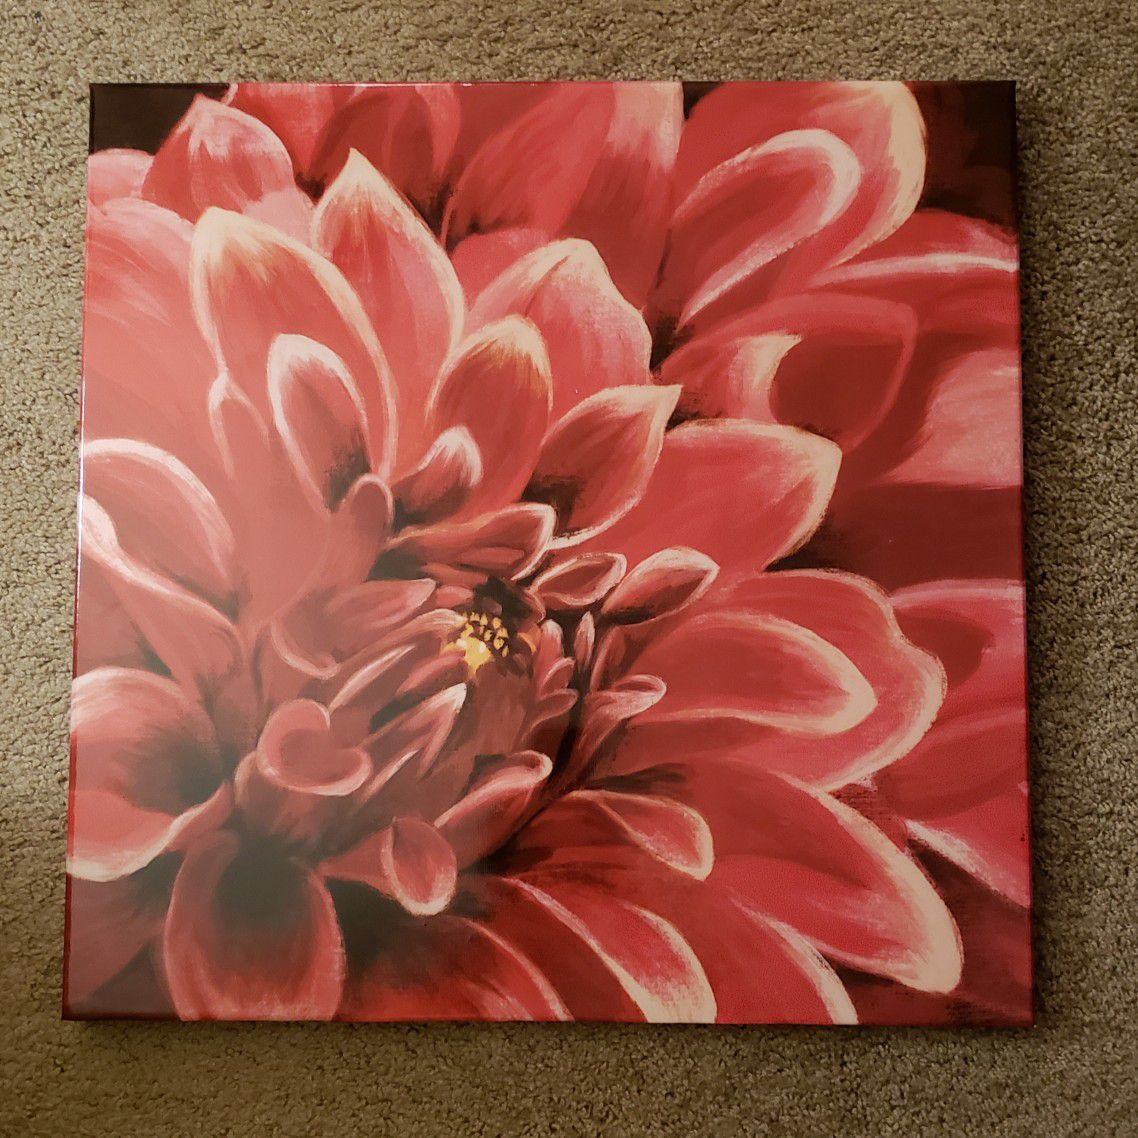 Pink Flower Glossy Painting